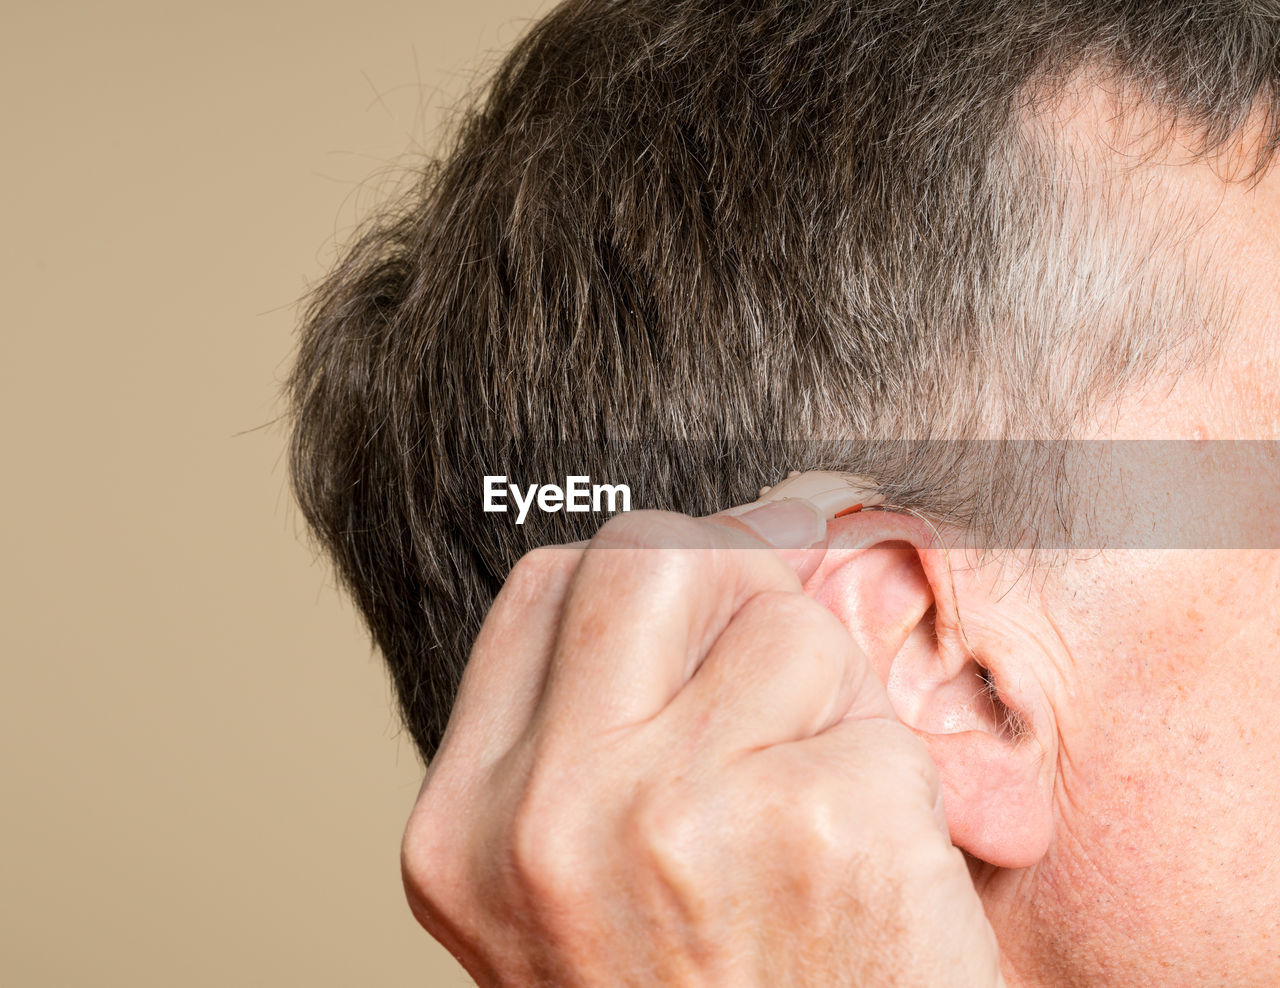 Close-Up Of Senior Man Holding Hearing Aid Against Beige Background